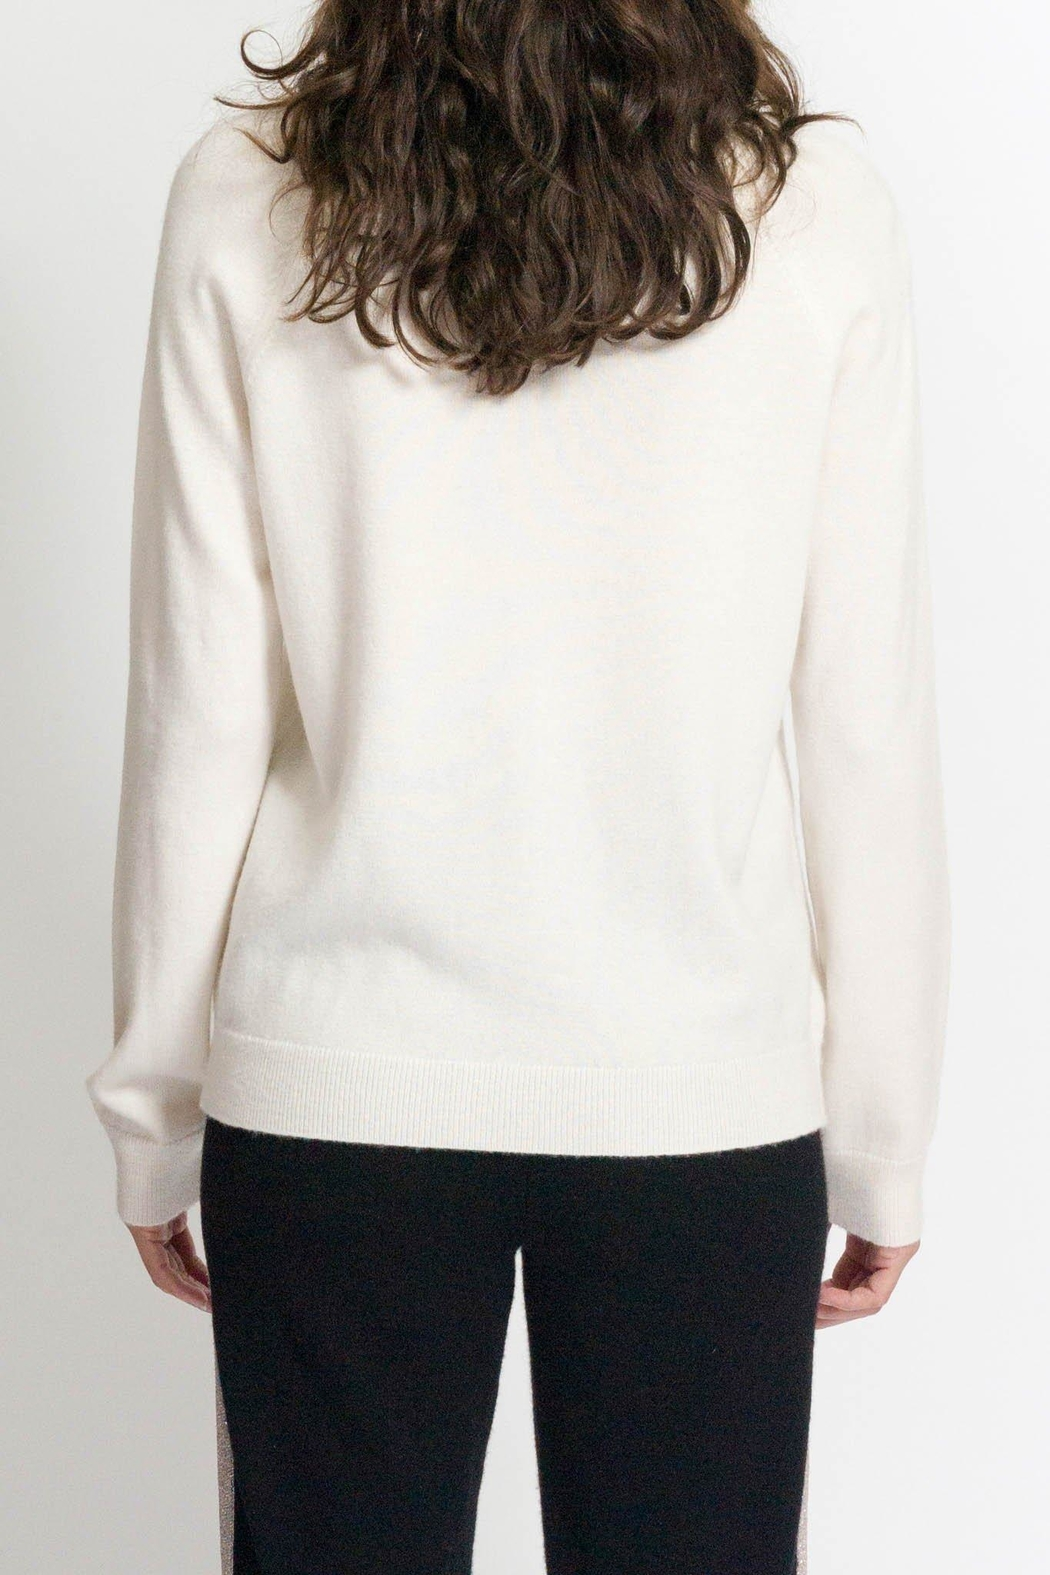 Replica Los Angeles Cashmere Vinyl Sweater - Side Cropped Image